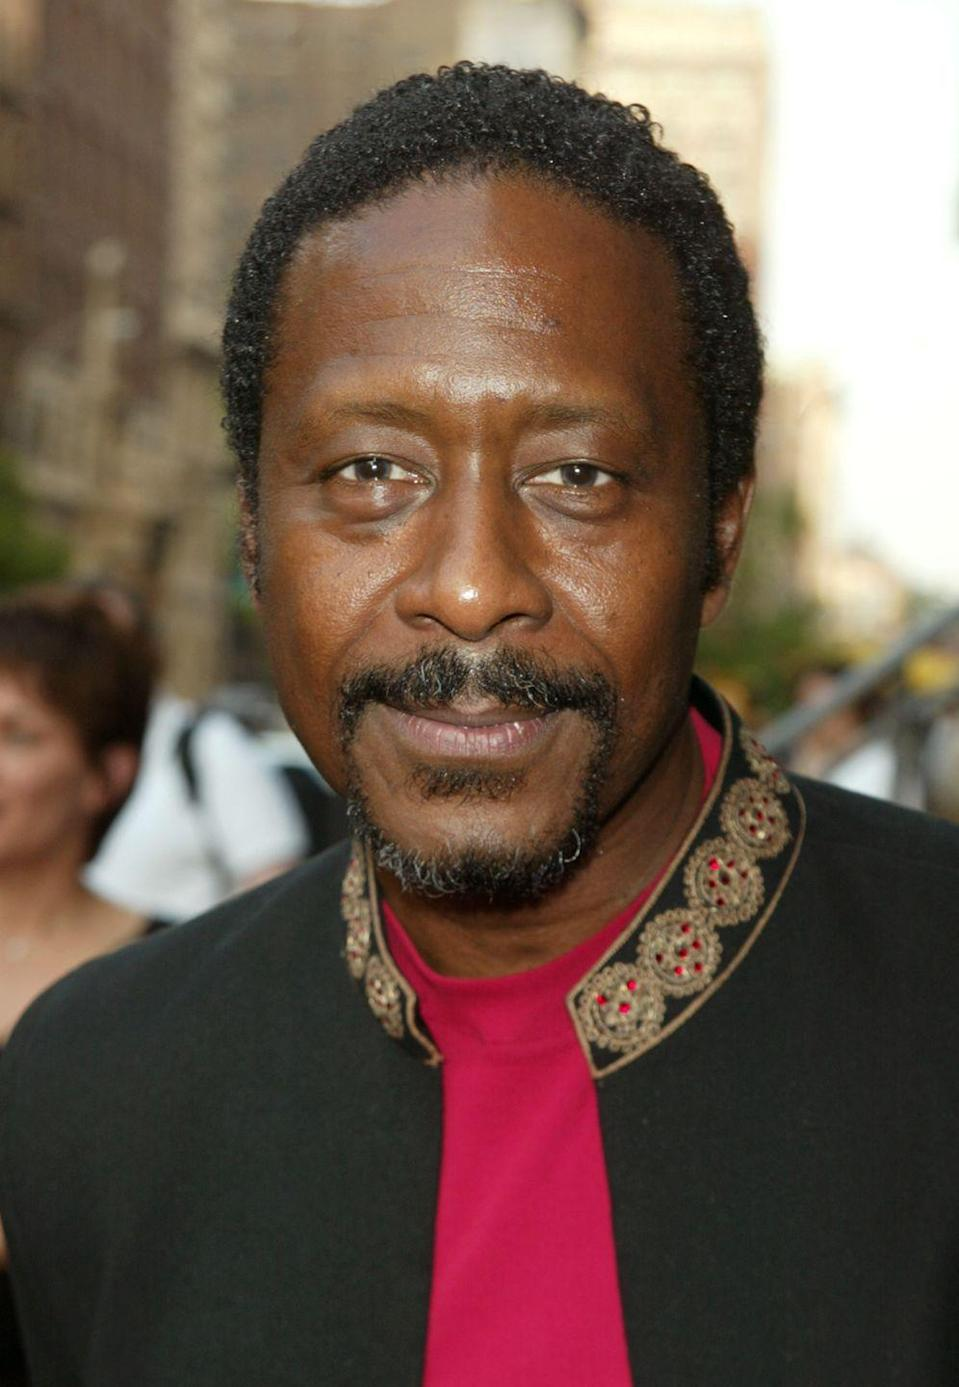 """<p> During his tenure are Lester Freamon on the series, the British thespian said he learned a great deal about American politics, history, and life in general. """"Although this was centered in Baltimore, it was easy to see in a very short period of time how Baltimore was just every major city in America,"""" he told <em><a href=""""https://www.maxim.com/entertainment/maxim-interrogates-makers-and-stars-wire"""" rel=""""nofollow noopener"""" target=""""_blank"""" data-ylk=""""slk:Maxim"""" class=""""link rapid-noclick-resp"""">Maxim</a>.</em></p><p>Costar West revealed to <a href=""""https://www.theguardian.com/culture/2011/sep/04/dominic-west-clarke-peters-interview-othello"""" rel=""""nofollow noopener"""" target=""""_blank"""" data-ylk=""""slk:The Guardian"""" class=""""link rapid-noclick-resp"""">The Guardian</a> that Peters was such a hardworking actor that his nickname on set was """"Four Jobs."""" <br></p>"""